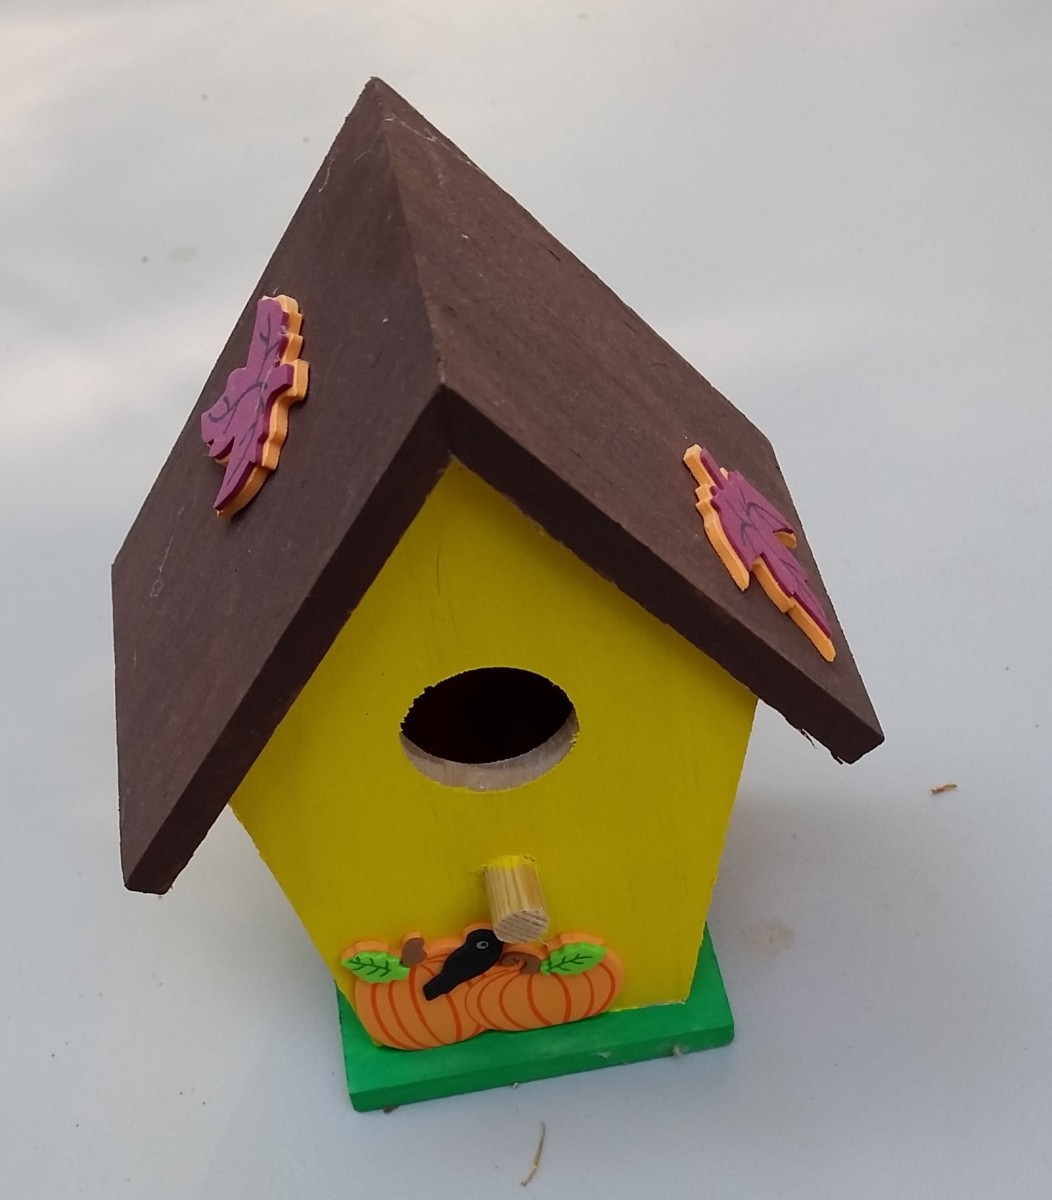 I found this miniature bird house at a craft store for $1. After a little paint and some autumn stickers, it's ready for the fairy (or ghost) garden.